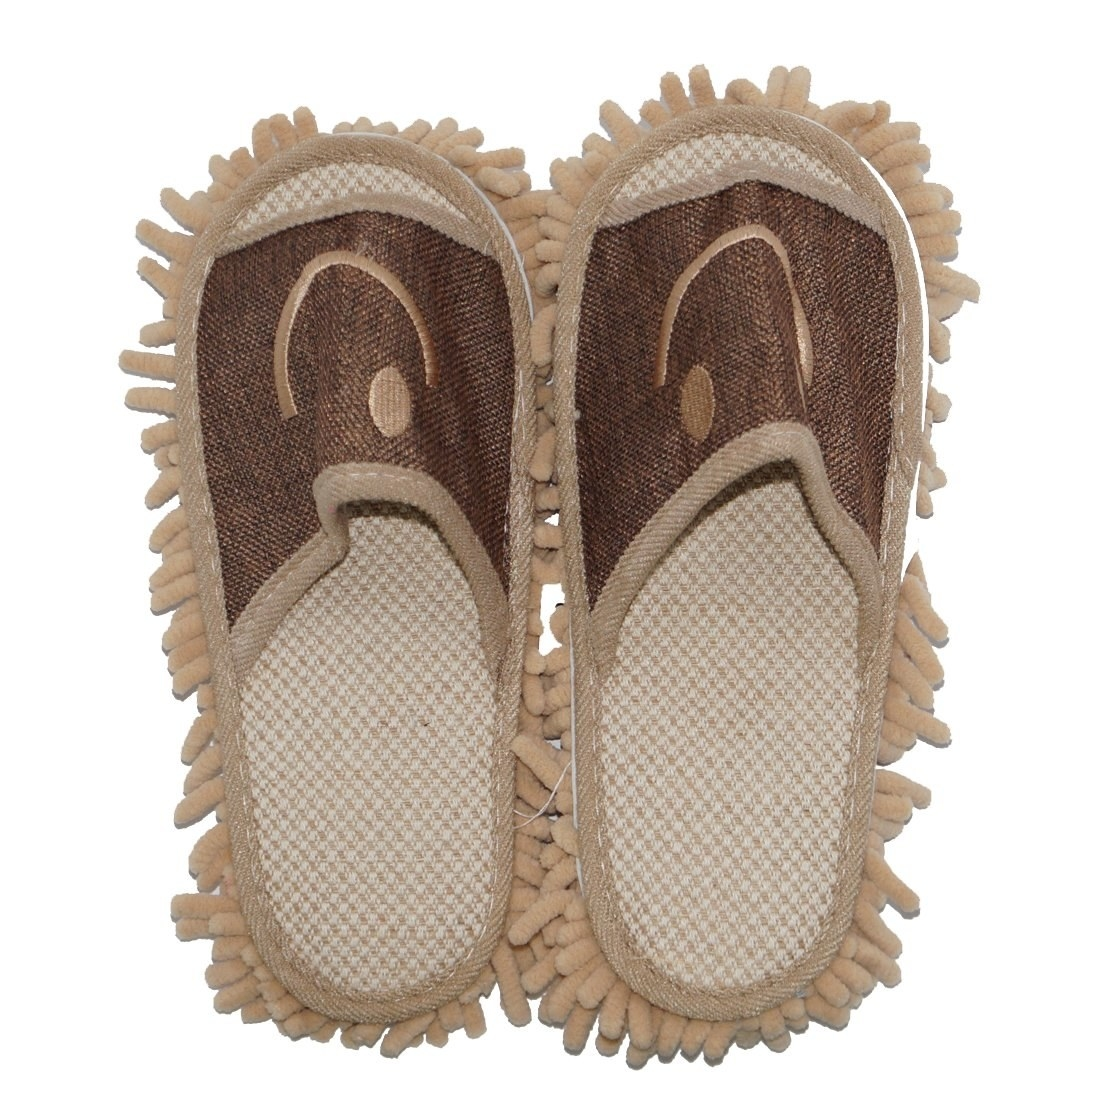 Brown slippers with mop on the bottom